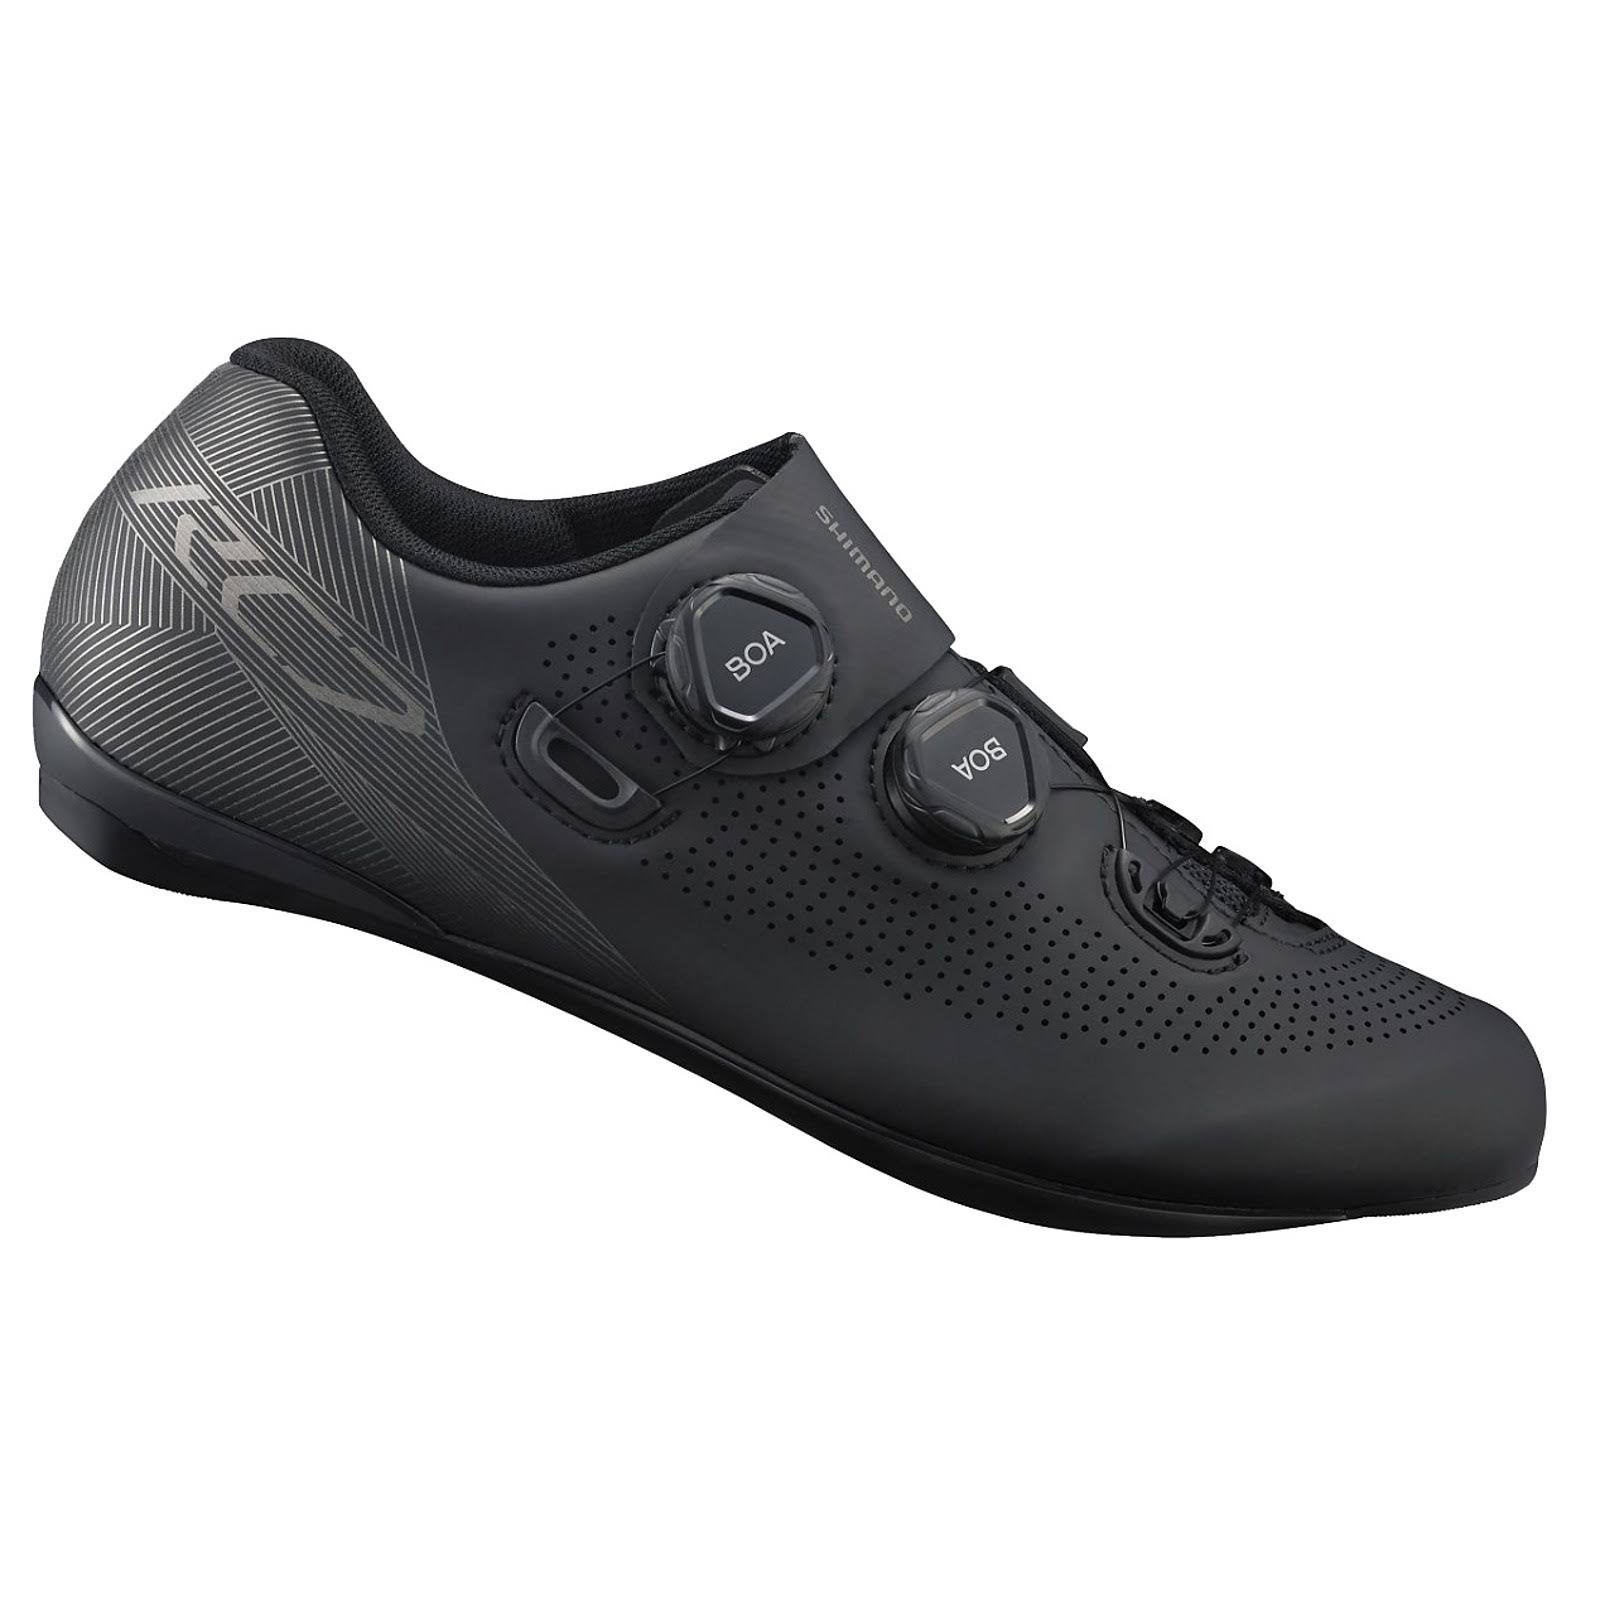 Shimano SH-RC7 Road Shoes Black 43.5